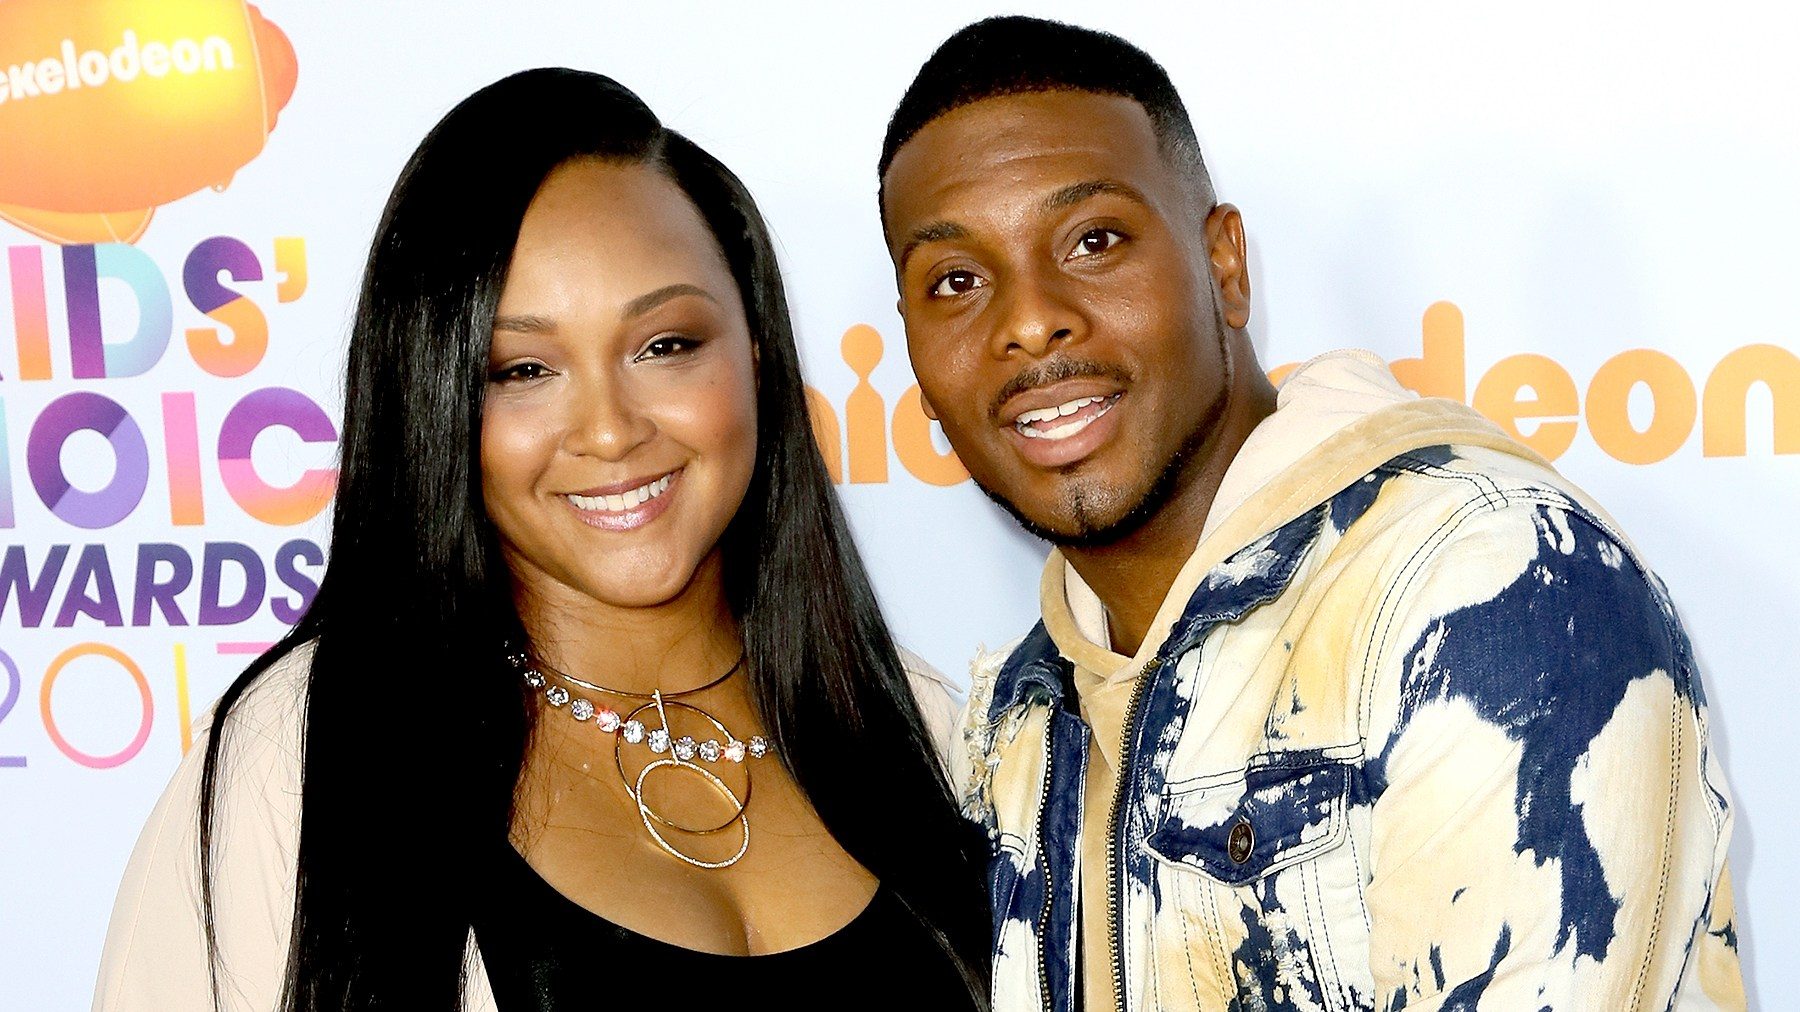 Asia Lee and Kel Mitchell attend Nickelodeon's 2017 Kids' Choice Awards at USC Galen Center on March 11, 2017 in Los Angeles, California.